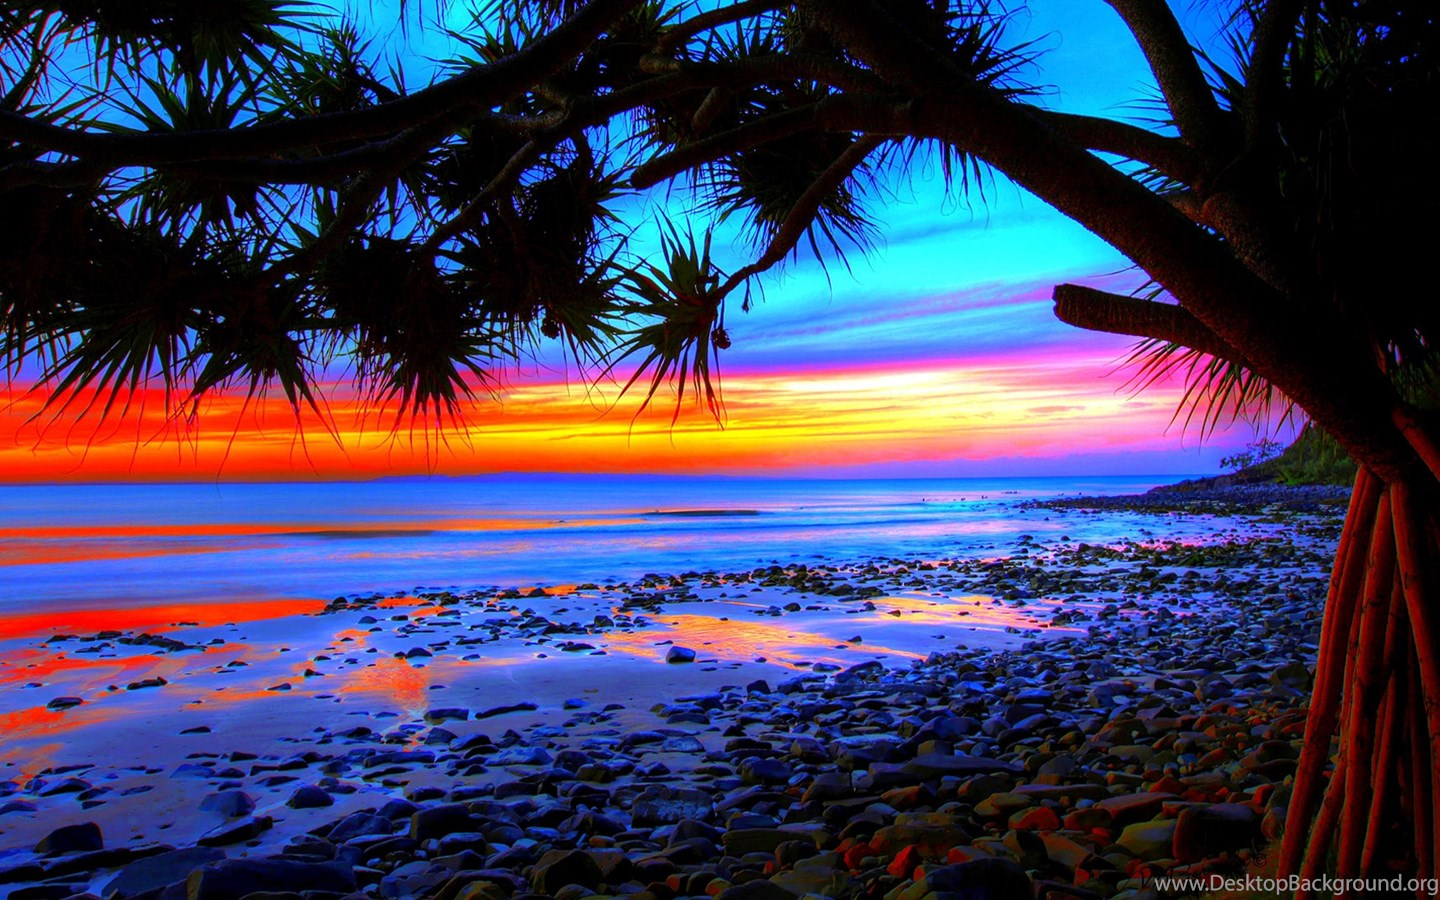 Tropical Beach Sunset Wallpapers 09, HD Desktop Wallpapers